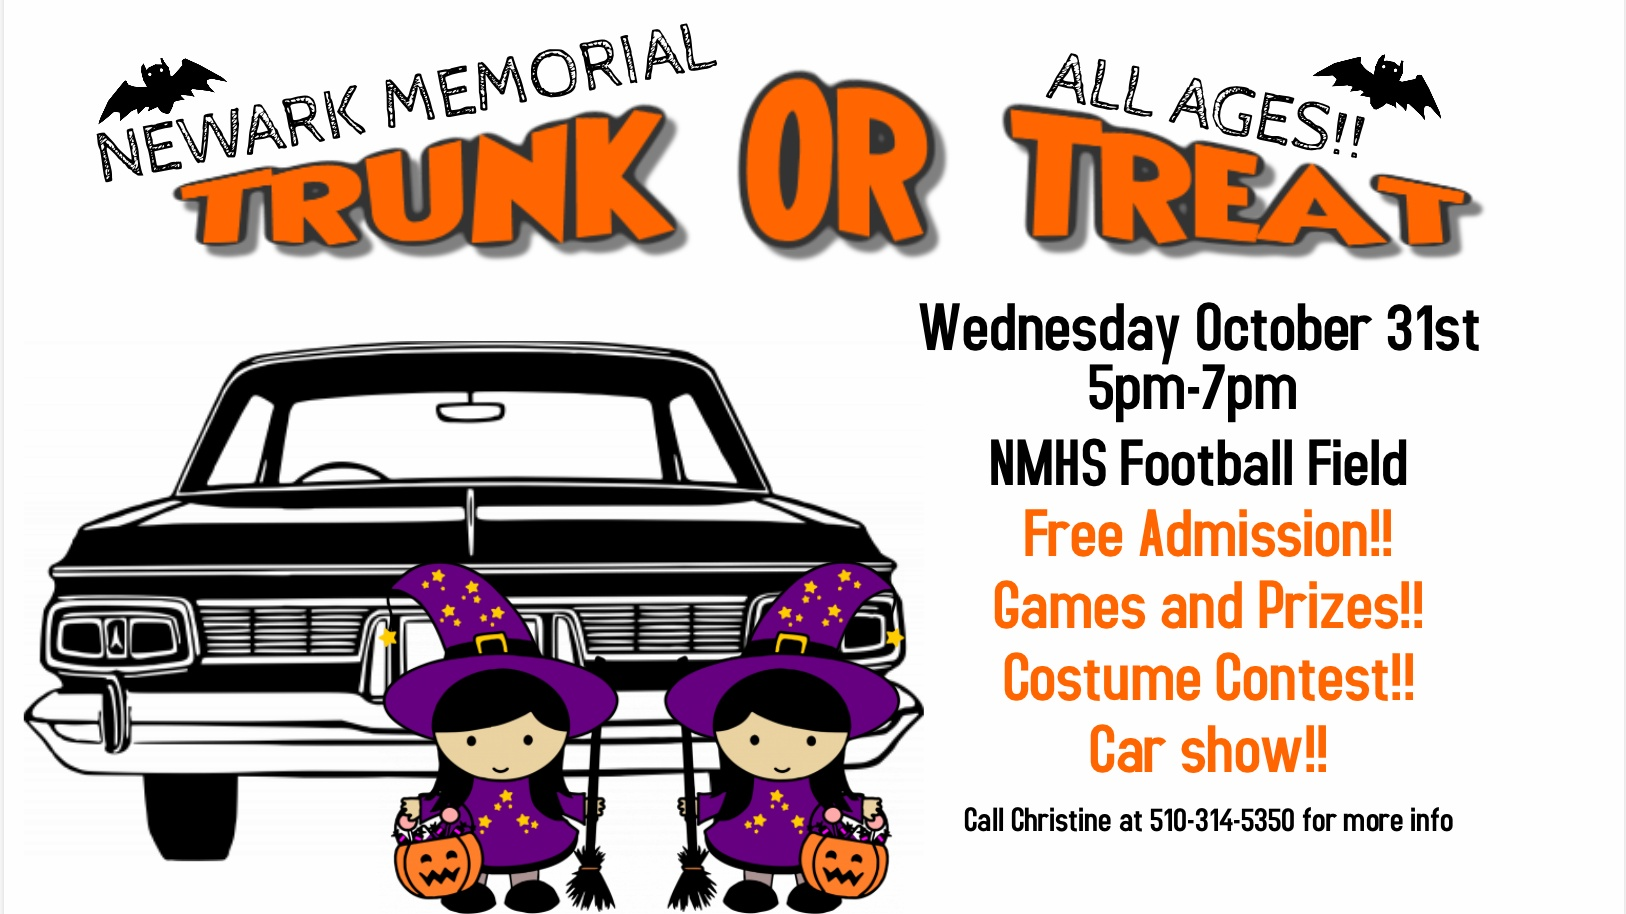 Trunk Or Treat Sponsormyevent